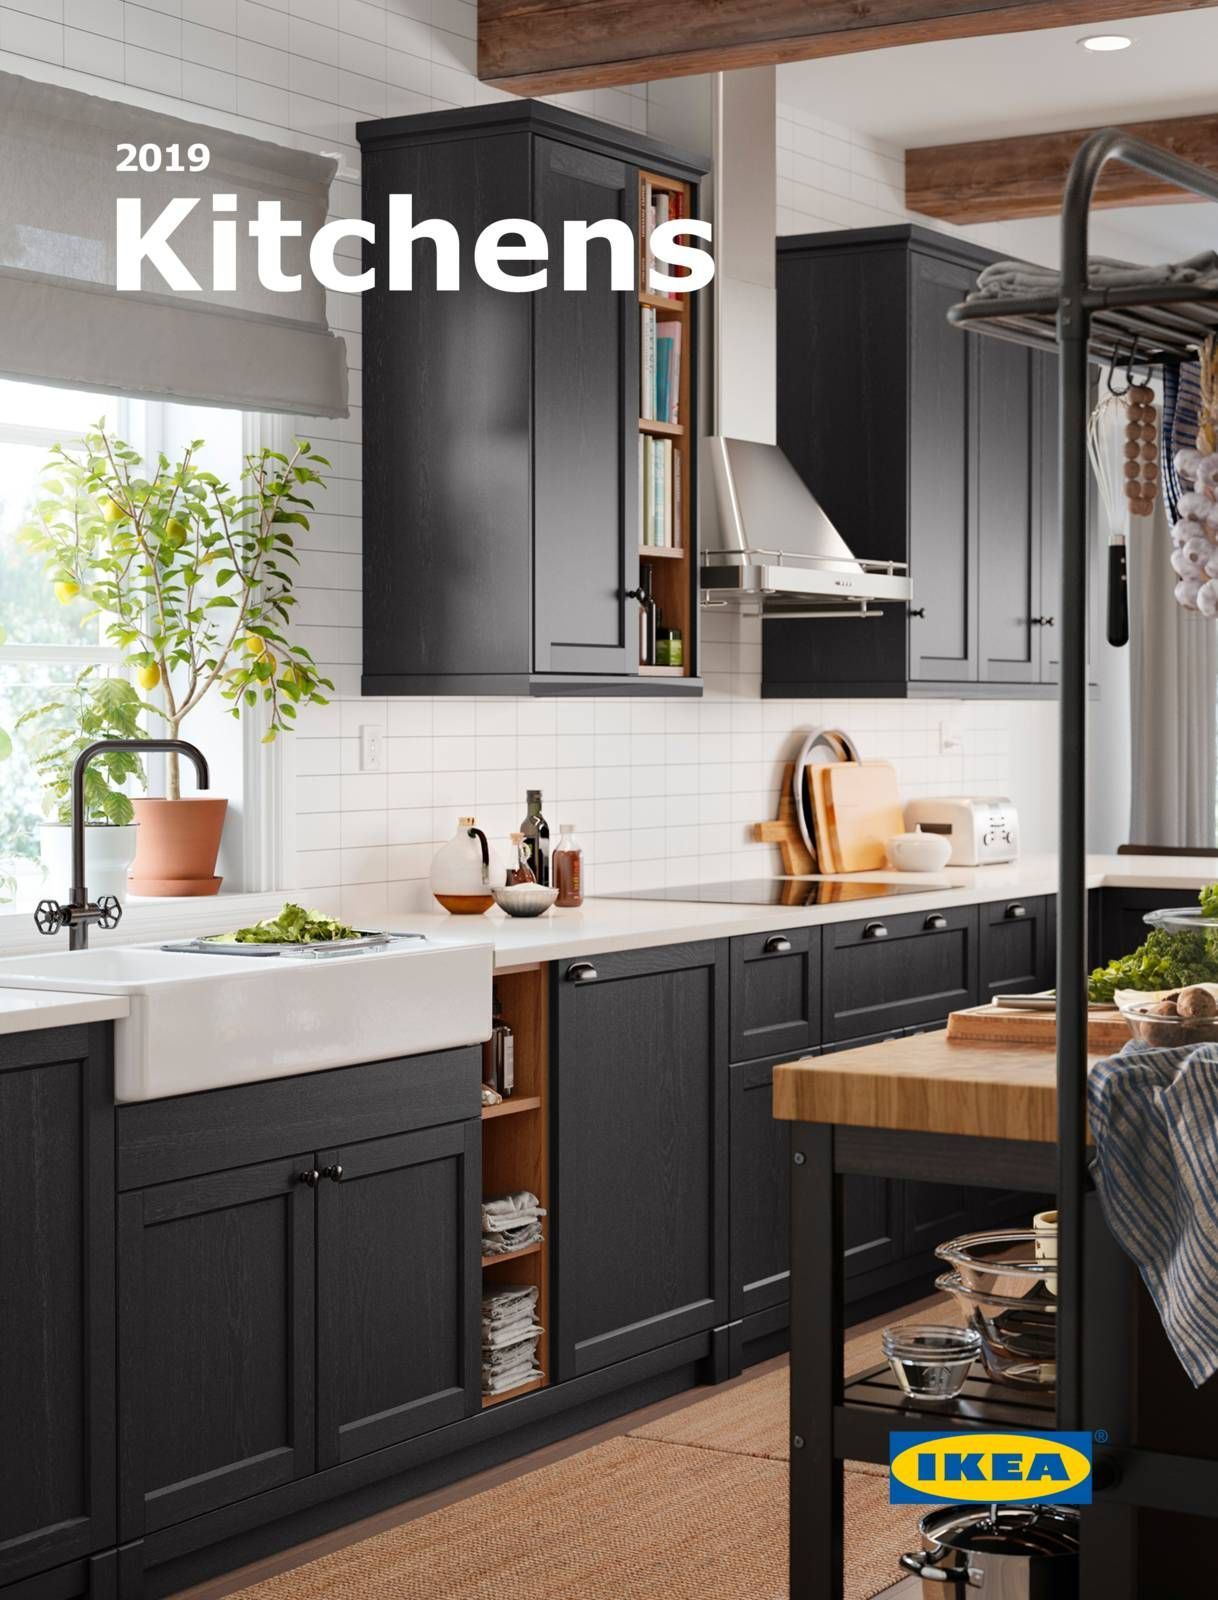 Neue Ikea Küchenfronten 2019 Kitchens 2019 Ikea Kitchen Brochure 2019 Diy In 2019 Ikea